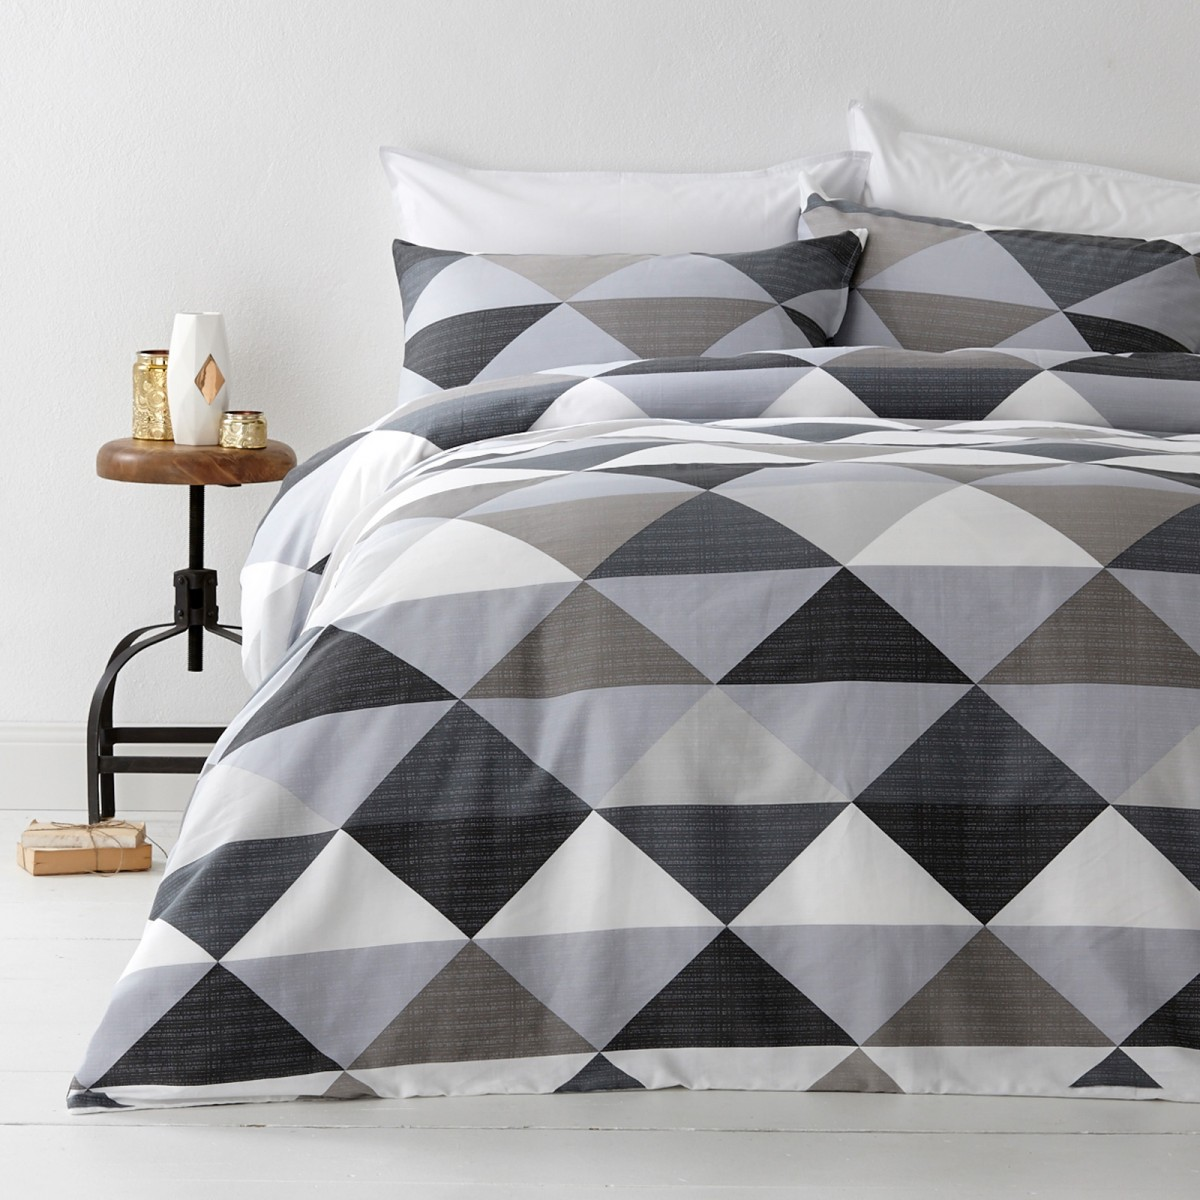 In 2 Linen Tanika Grey Double Bed Quilt Cover Set - In 2 Linen : double bed quilt - Adamdwight.com